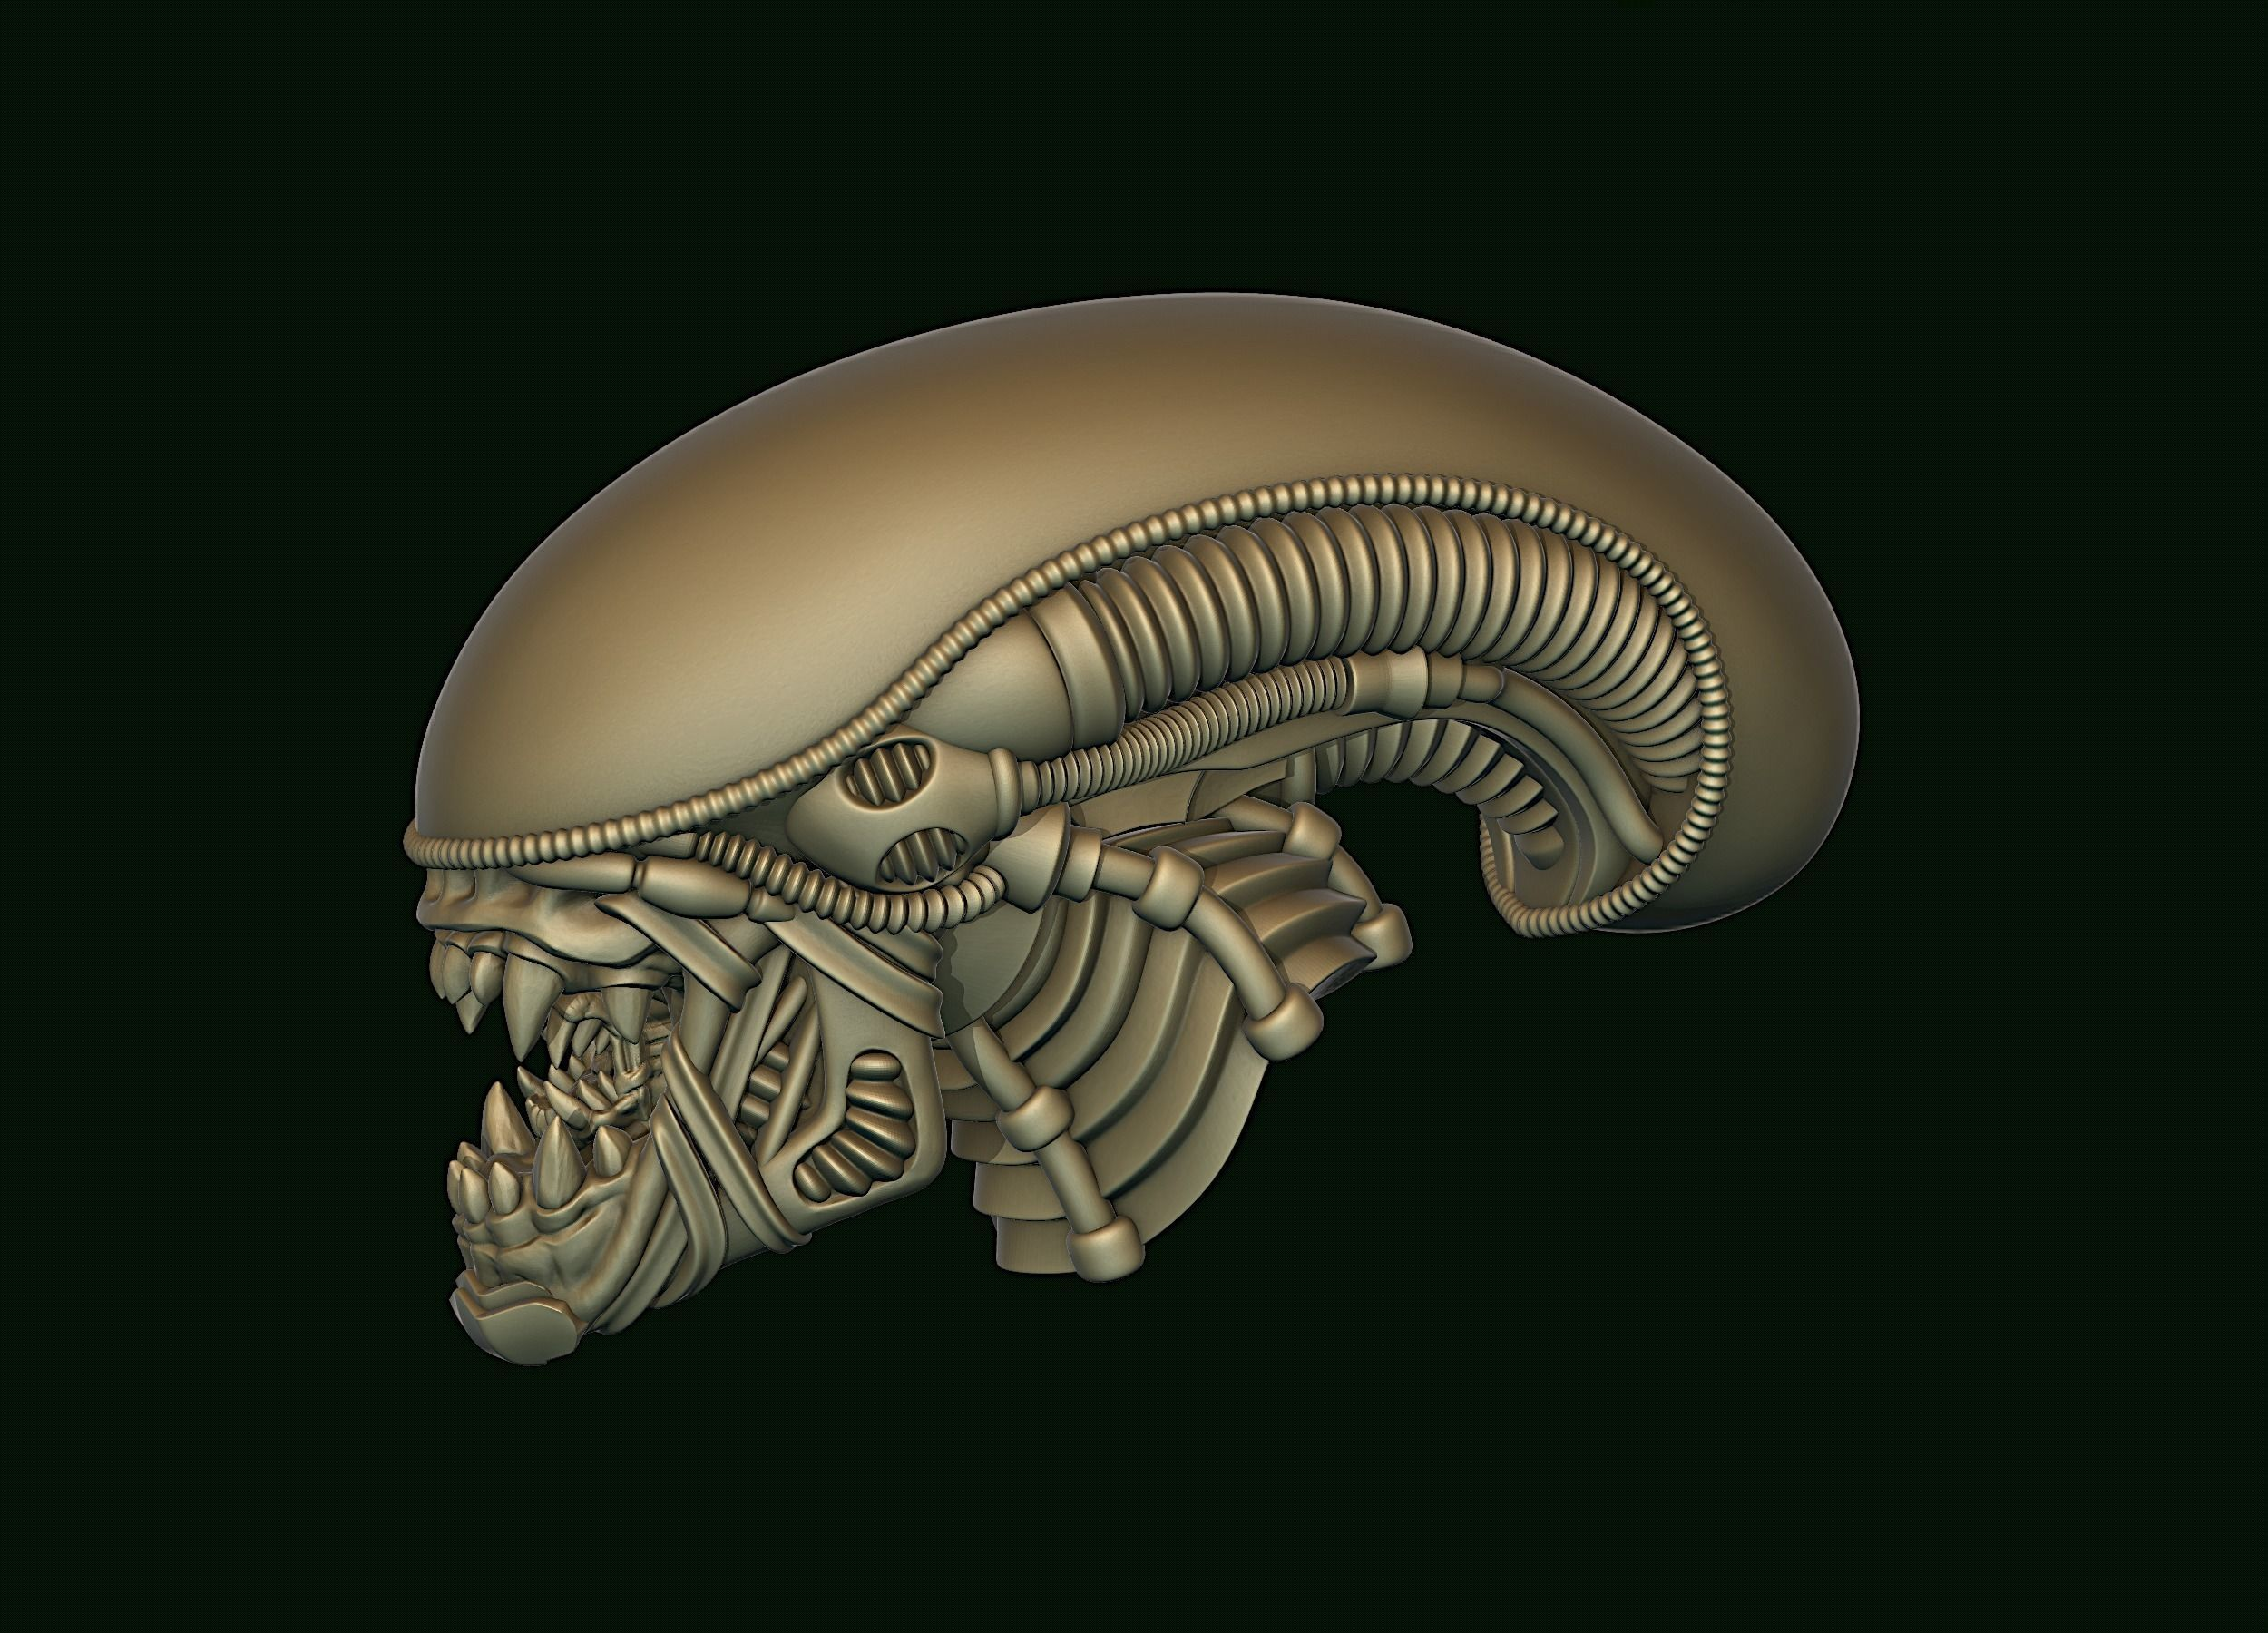 Xenomorph Alien biomechanical head